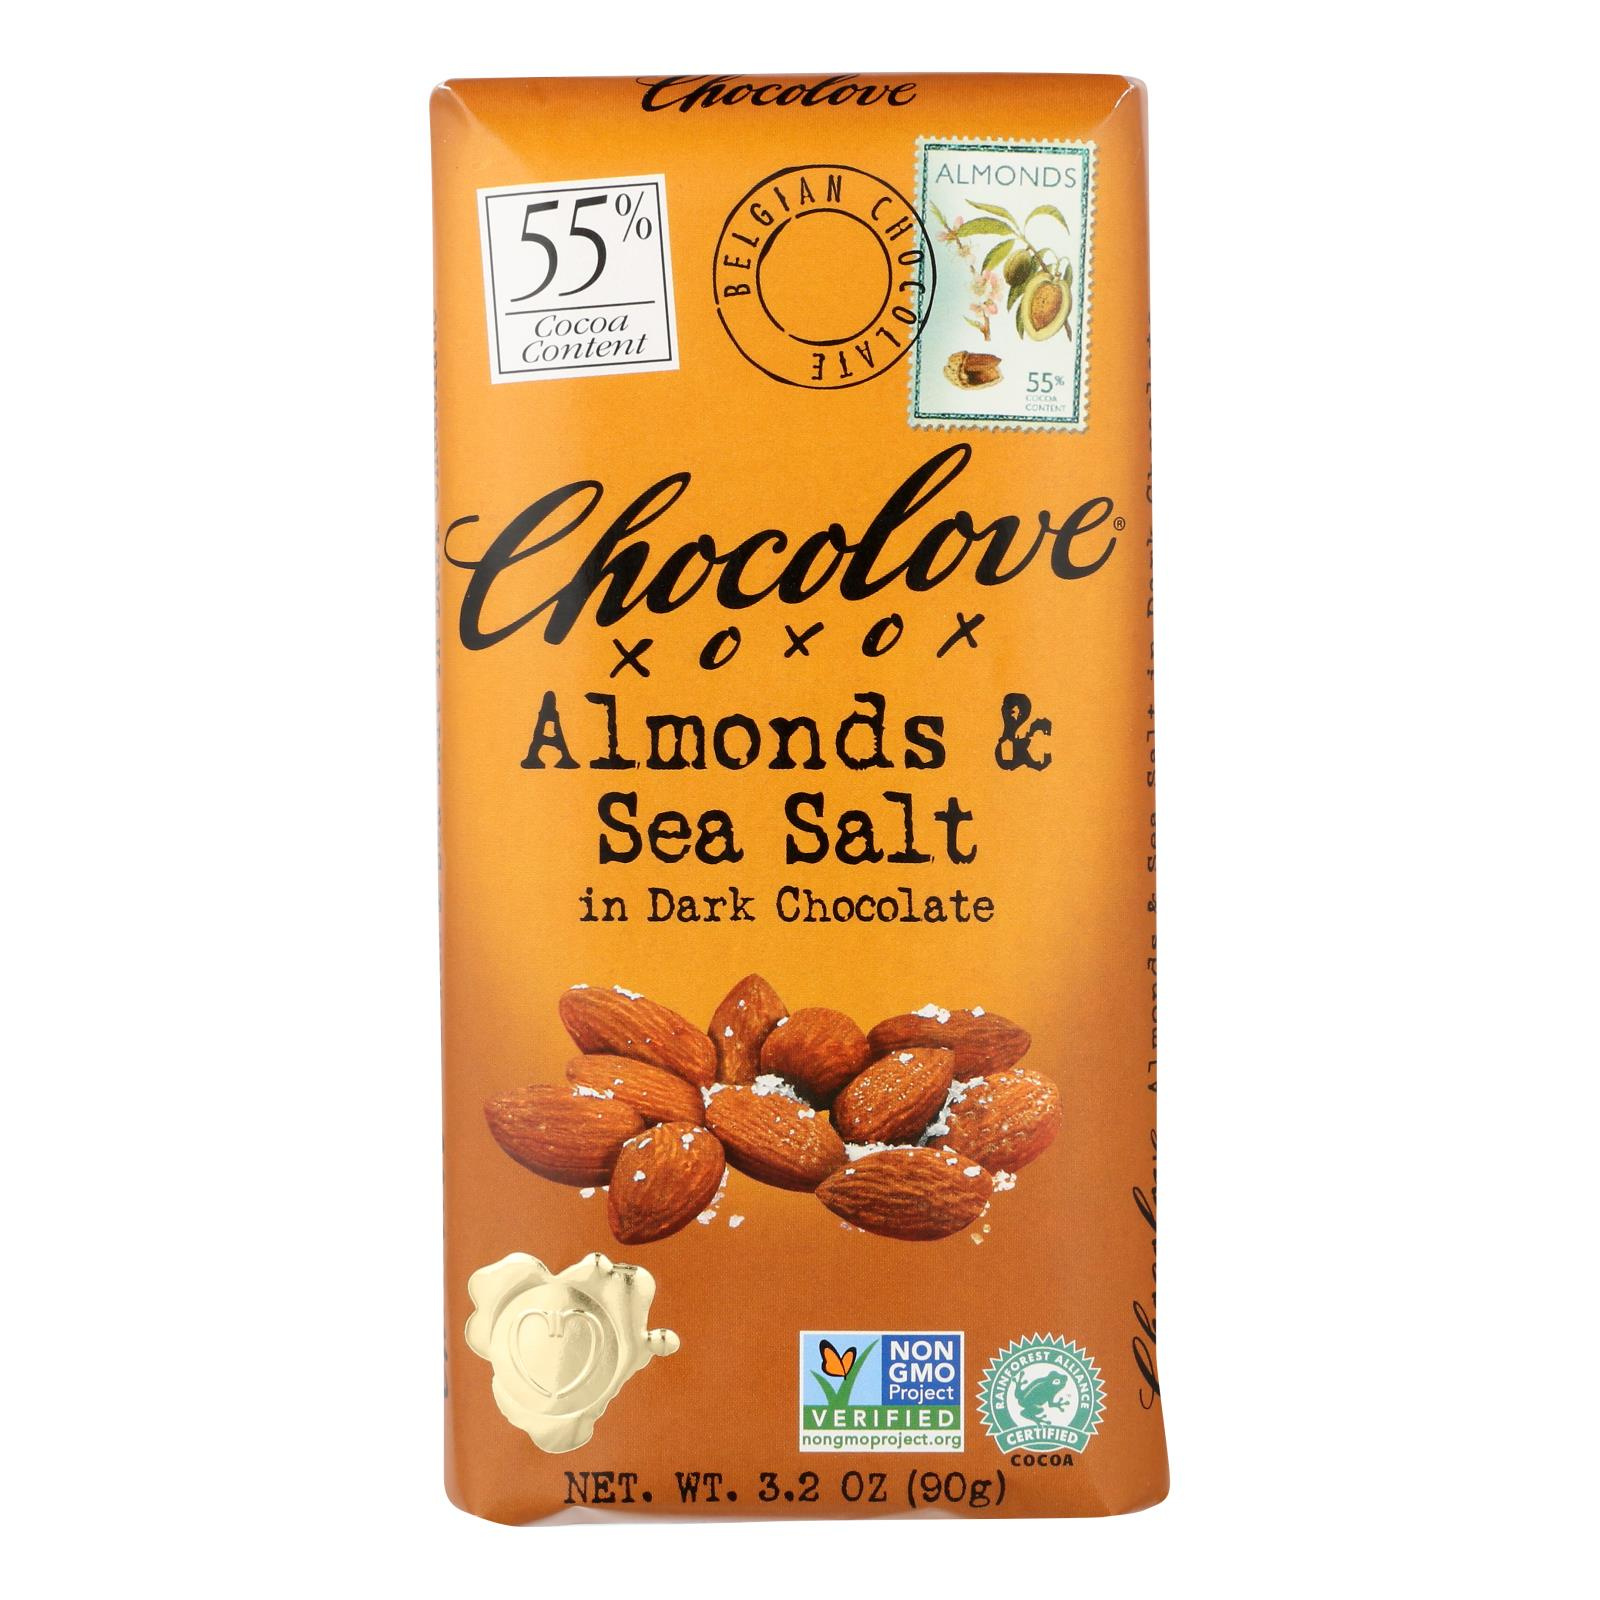 Chocolove Xoxox - Premium Chocolate Bar - Dark Chocolate - Almonds and Sea Salt - 3.2 oz Bars - Case of 12